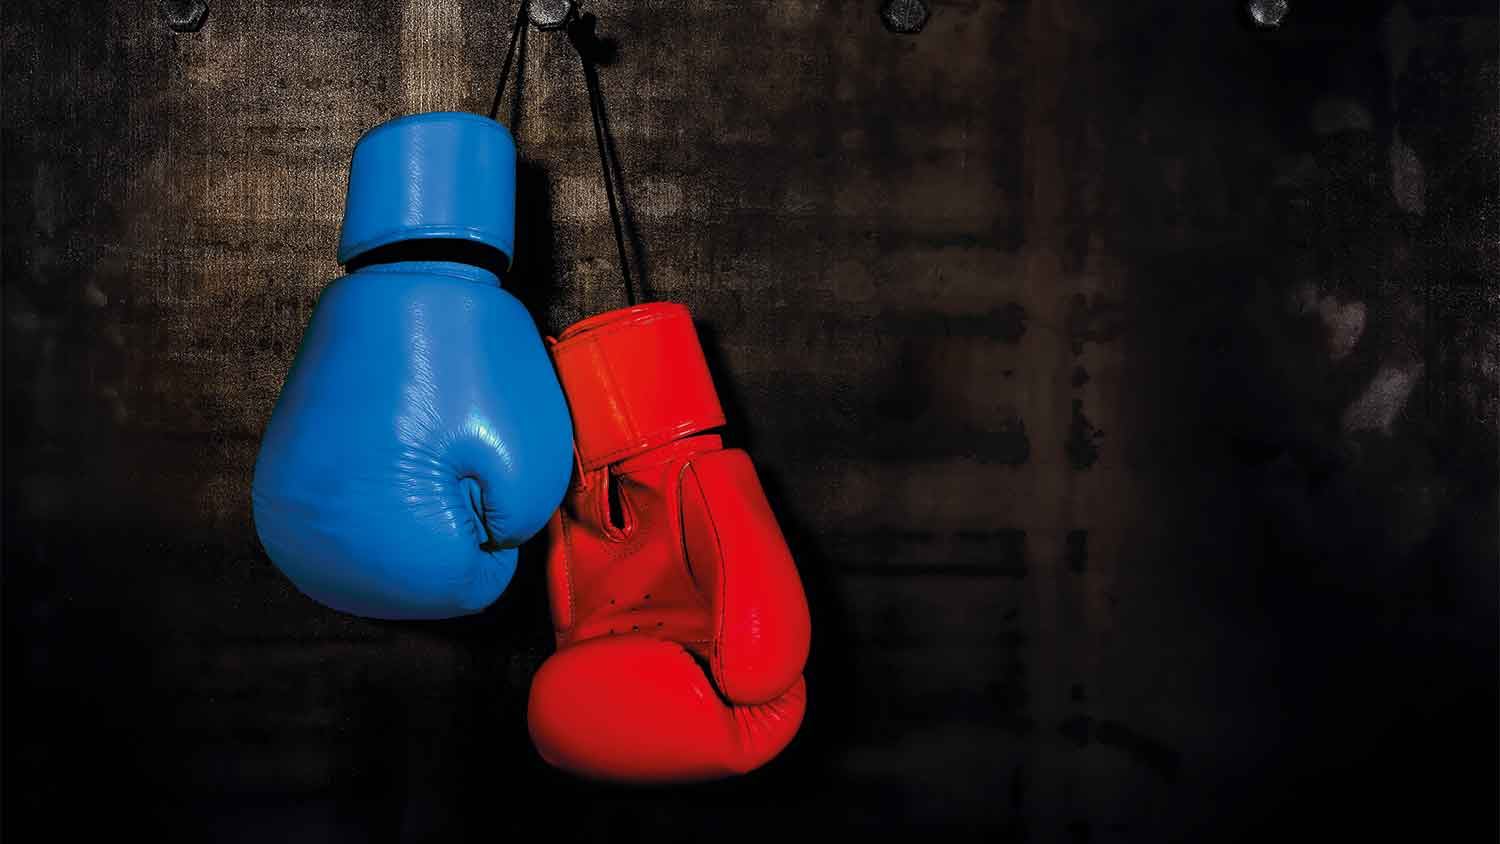 One red boxing glove and one blue boxing glove hanging up